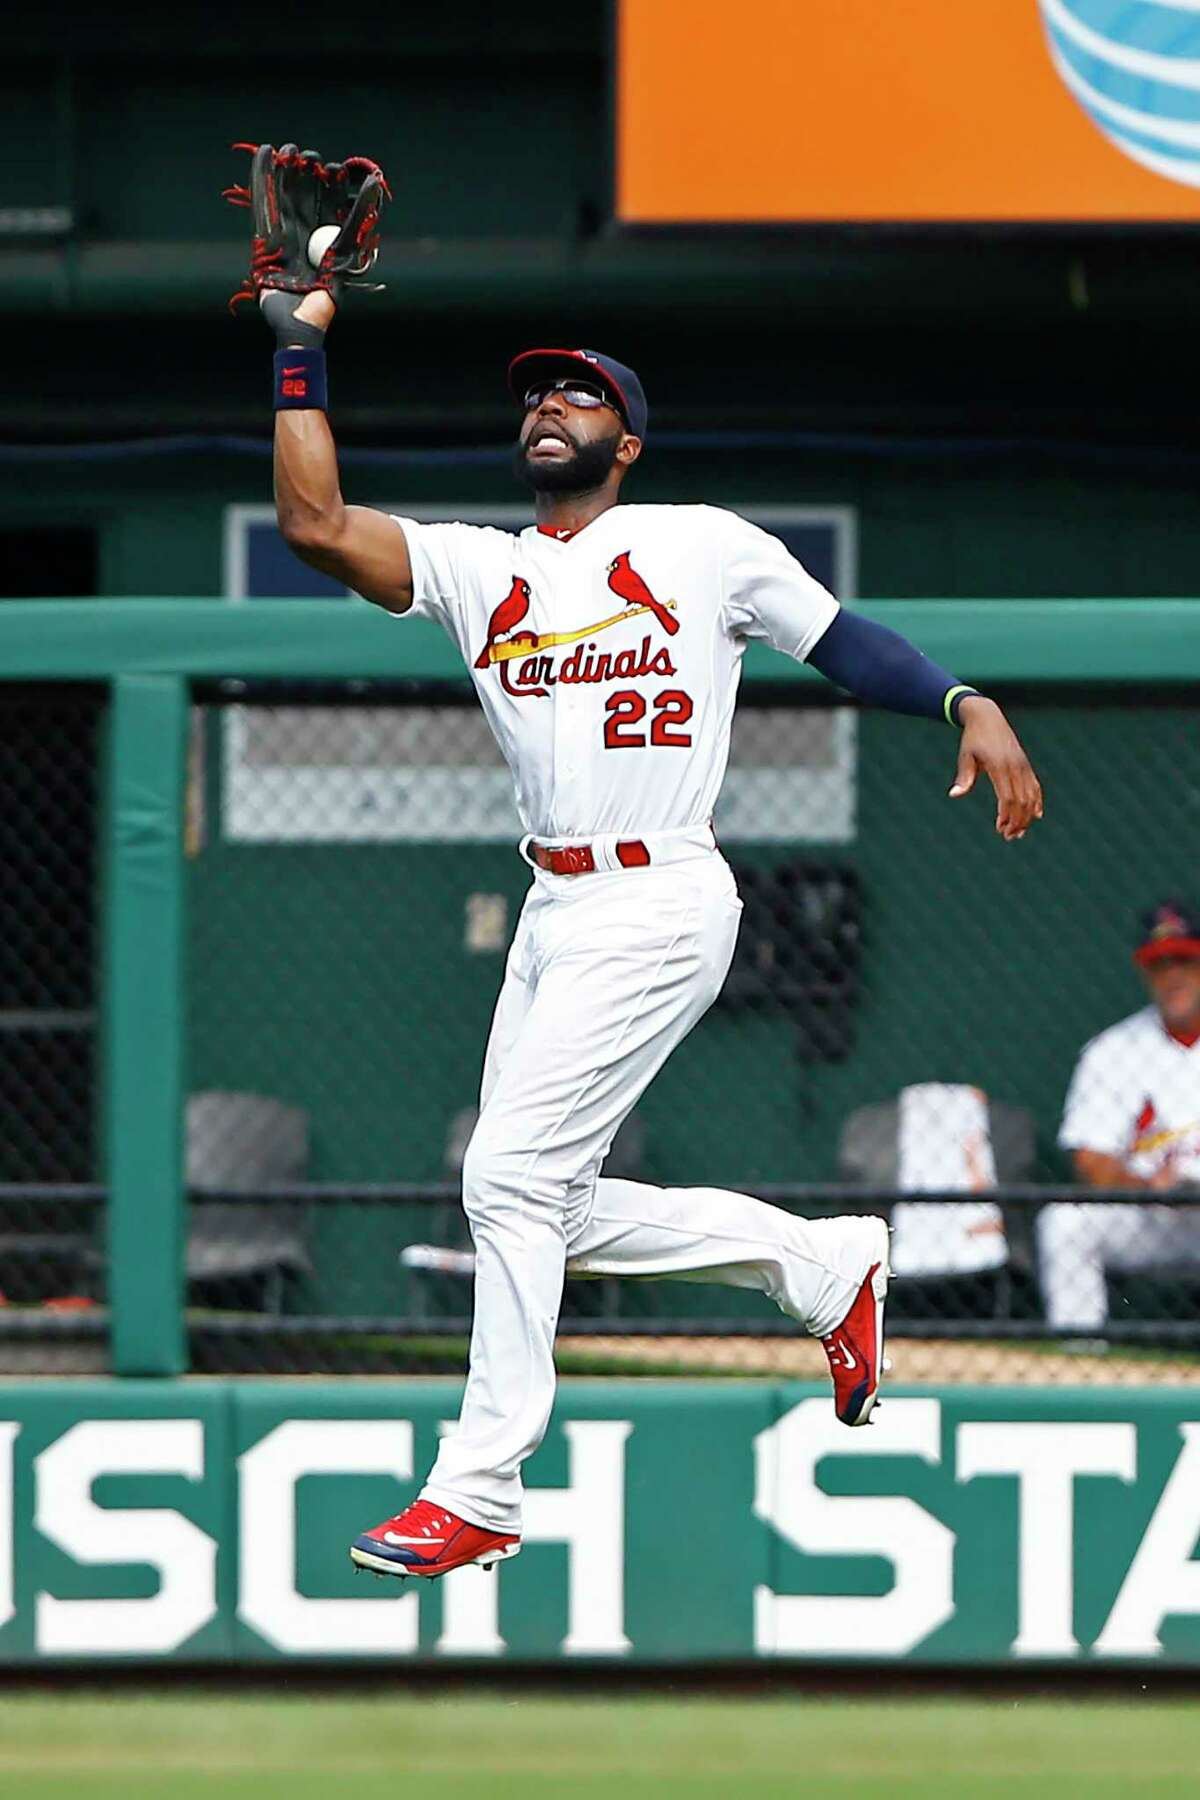 The Chicago Cubs and free agent outfielder Jason Heyward have agreed to a $184 million, eight-year contract.